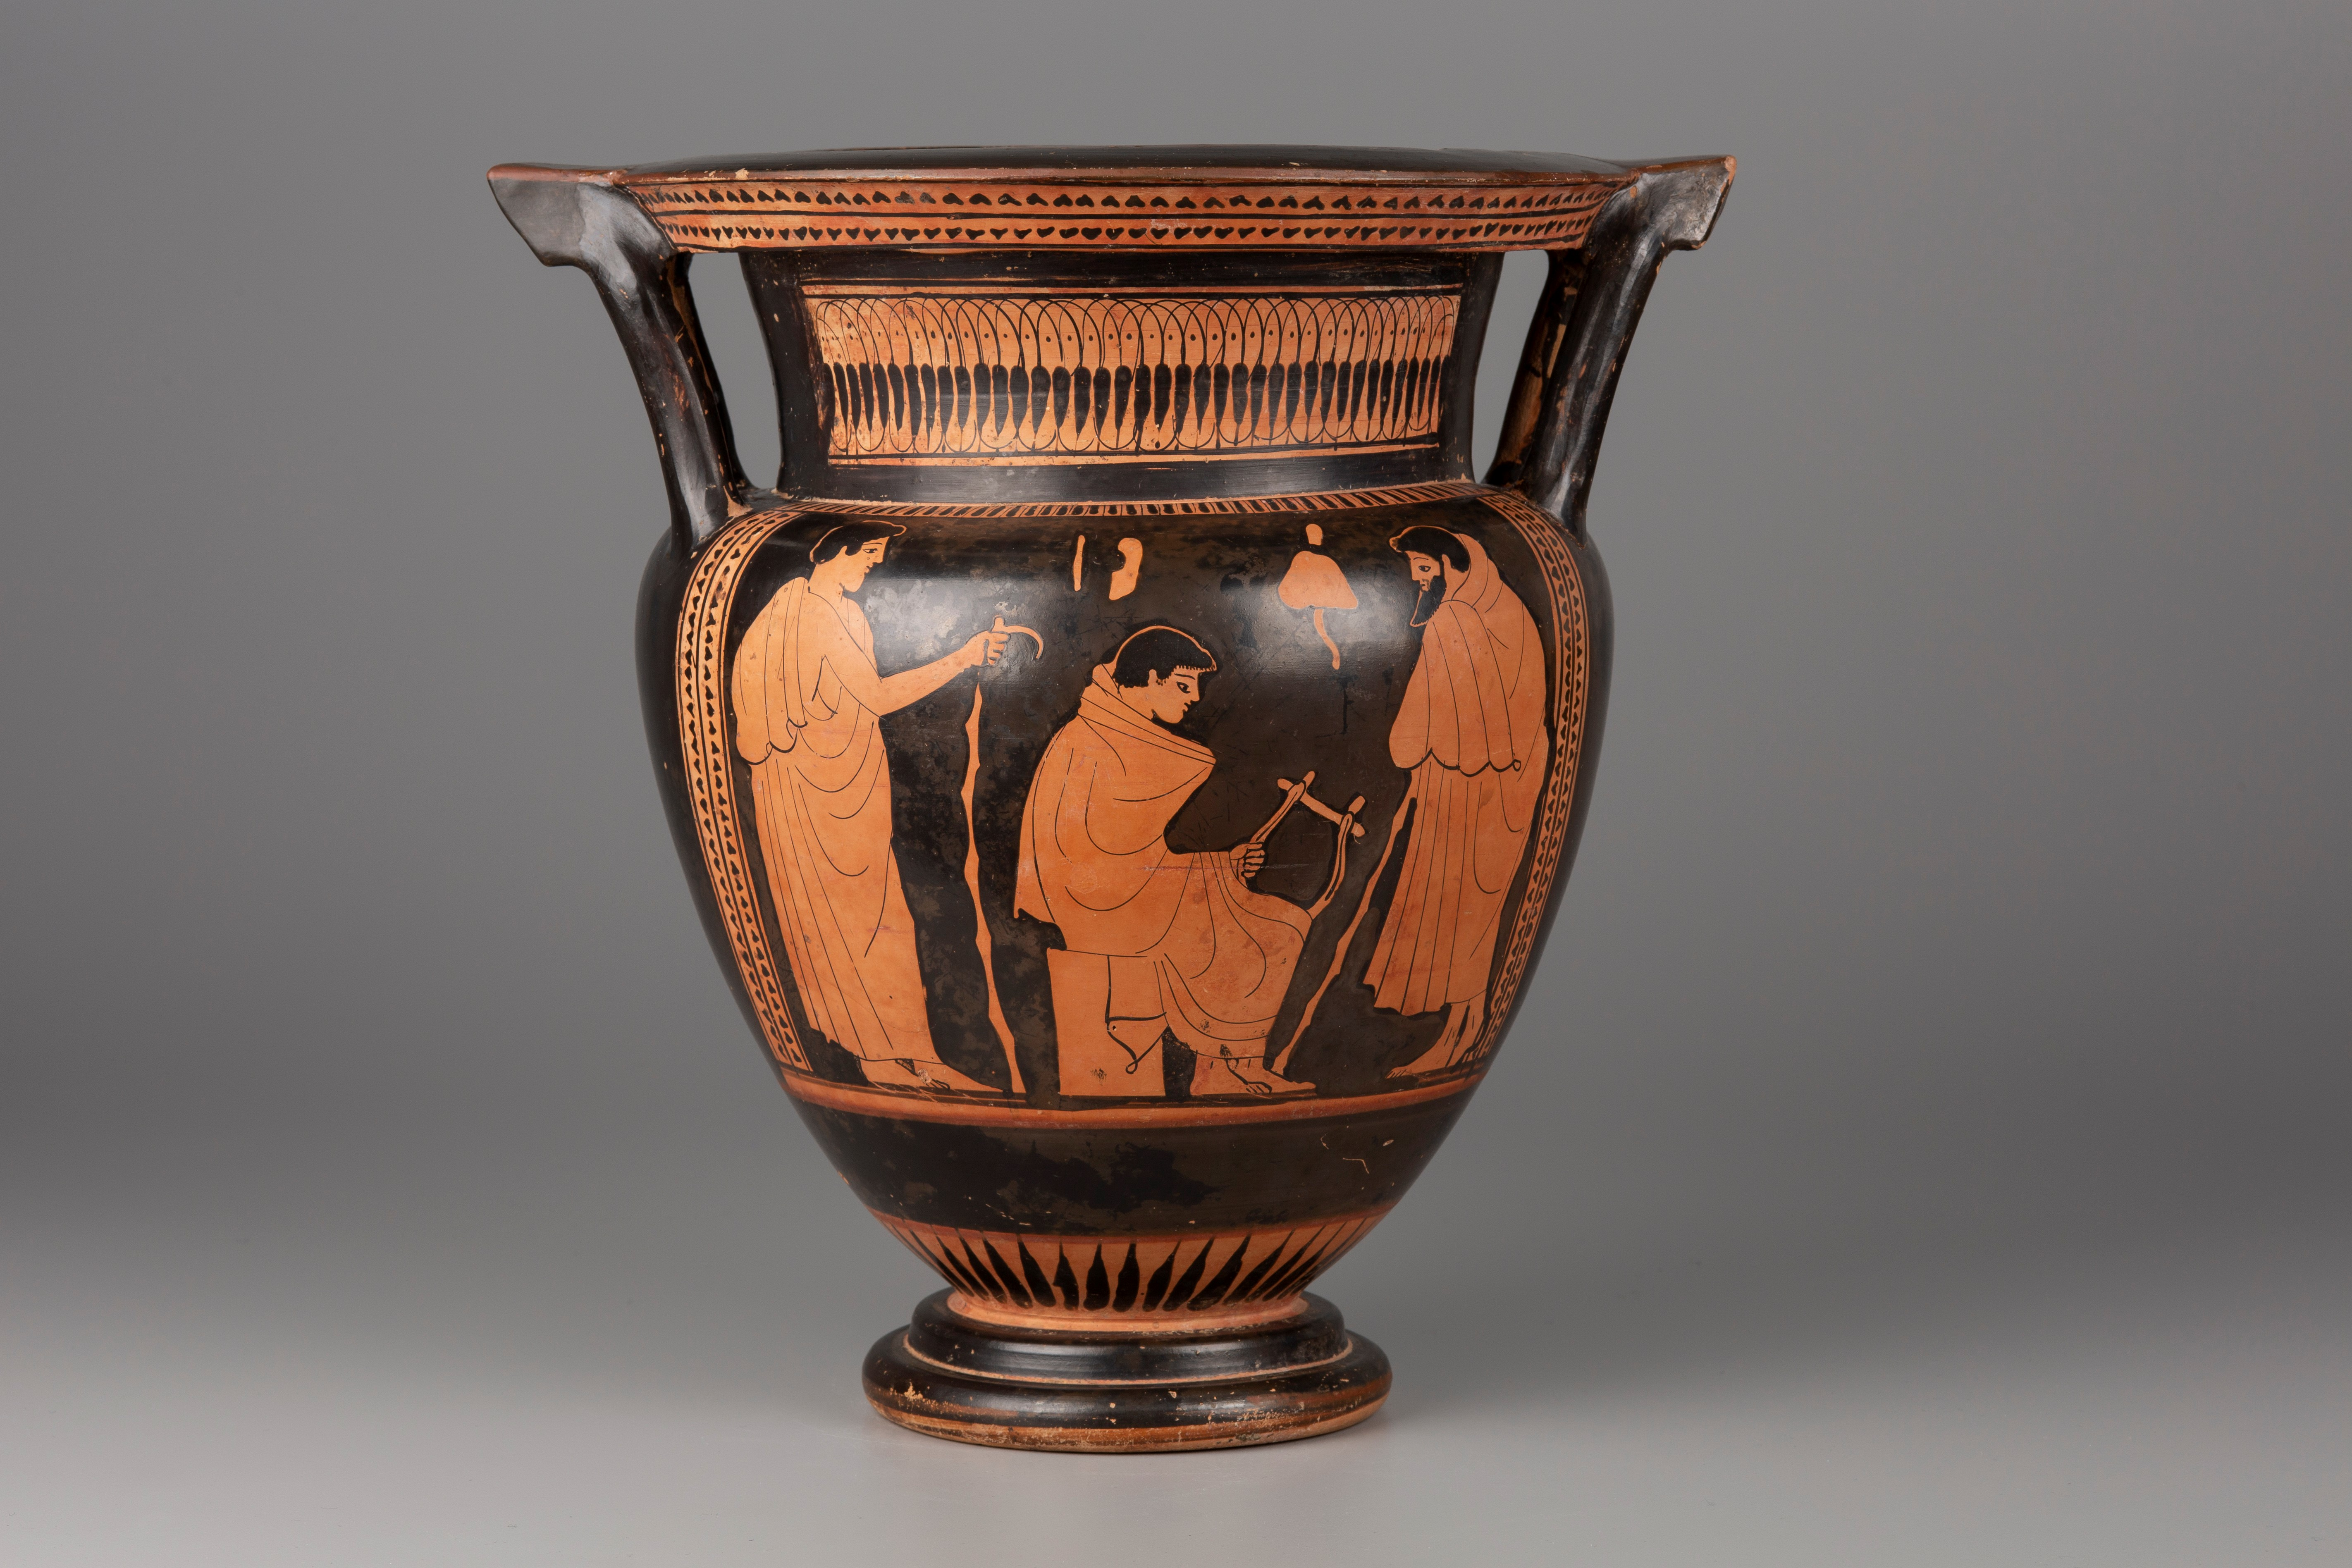 A color photograph shows a wide-mouthed jar with a flaring base. On each side, a handle connects the vessel's shoulder to its projecting rim. On the belly of the jar are orange figures set against a black ground. At the center, a seated boy enveloped in a mantle holds a lyre. He is framed by two men with walking sticks. One is bearded, the other is not; both are draped with copious cloaks. Athletic implements, including jumping weights, a sponge, and a strigil, are suspended above the boy.